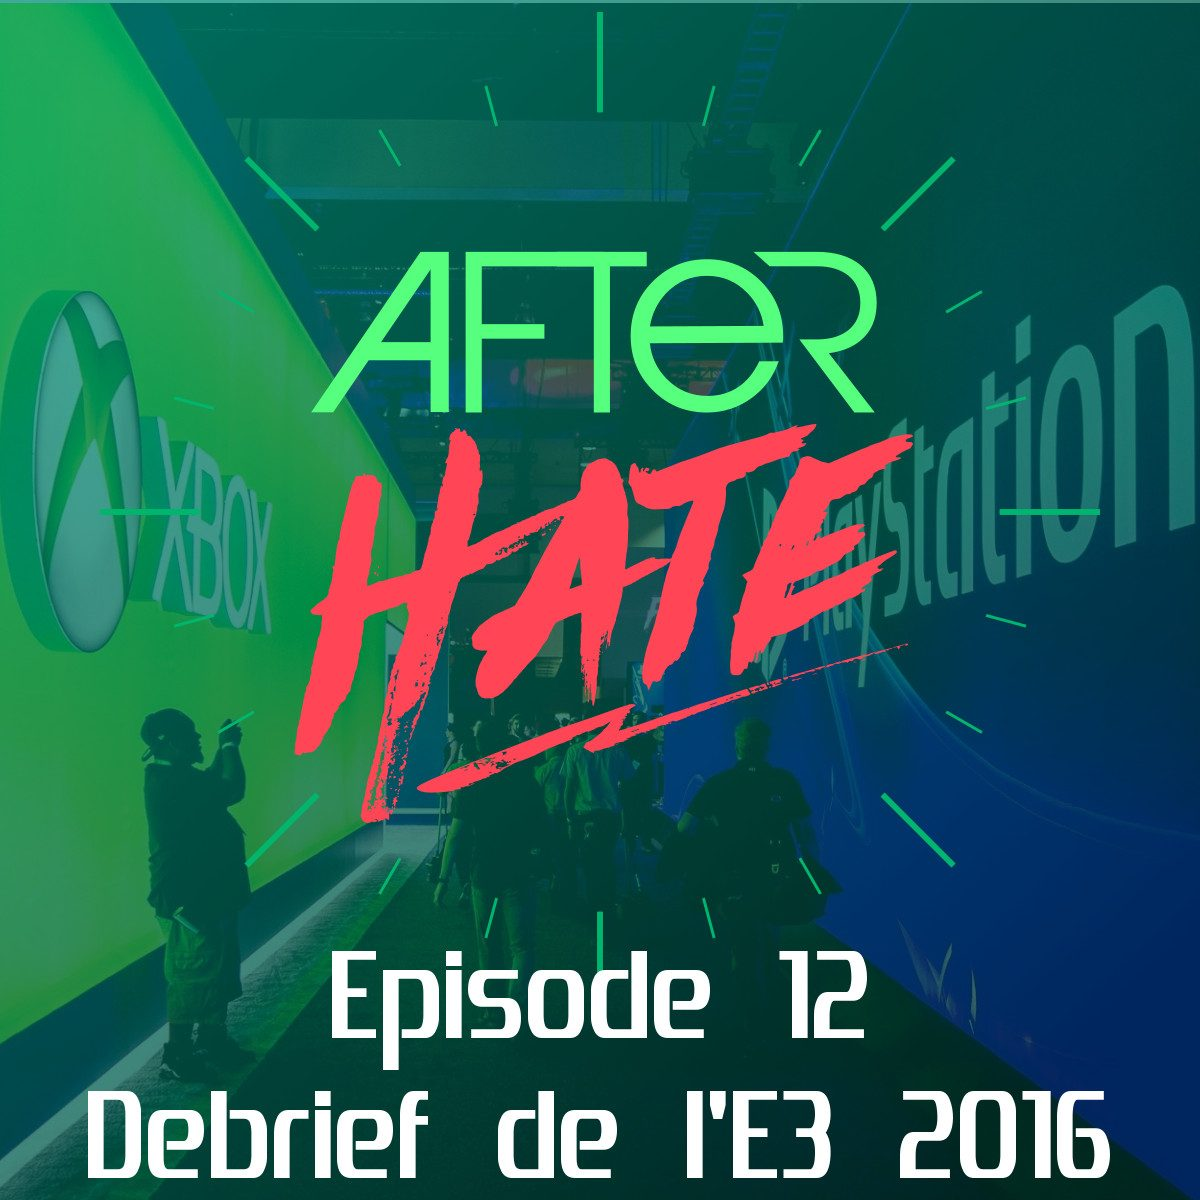 Episode 12 : Debrief de l'E3 2016